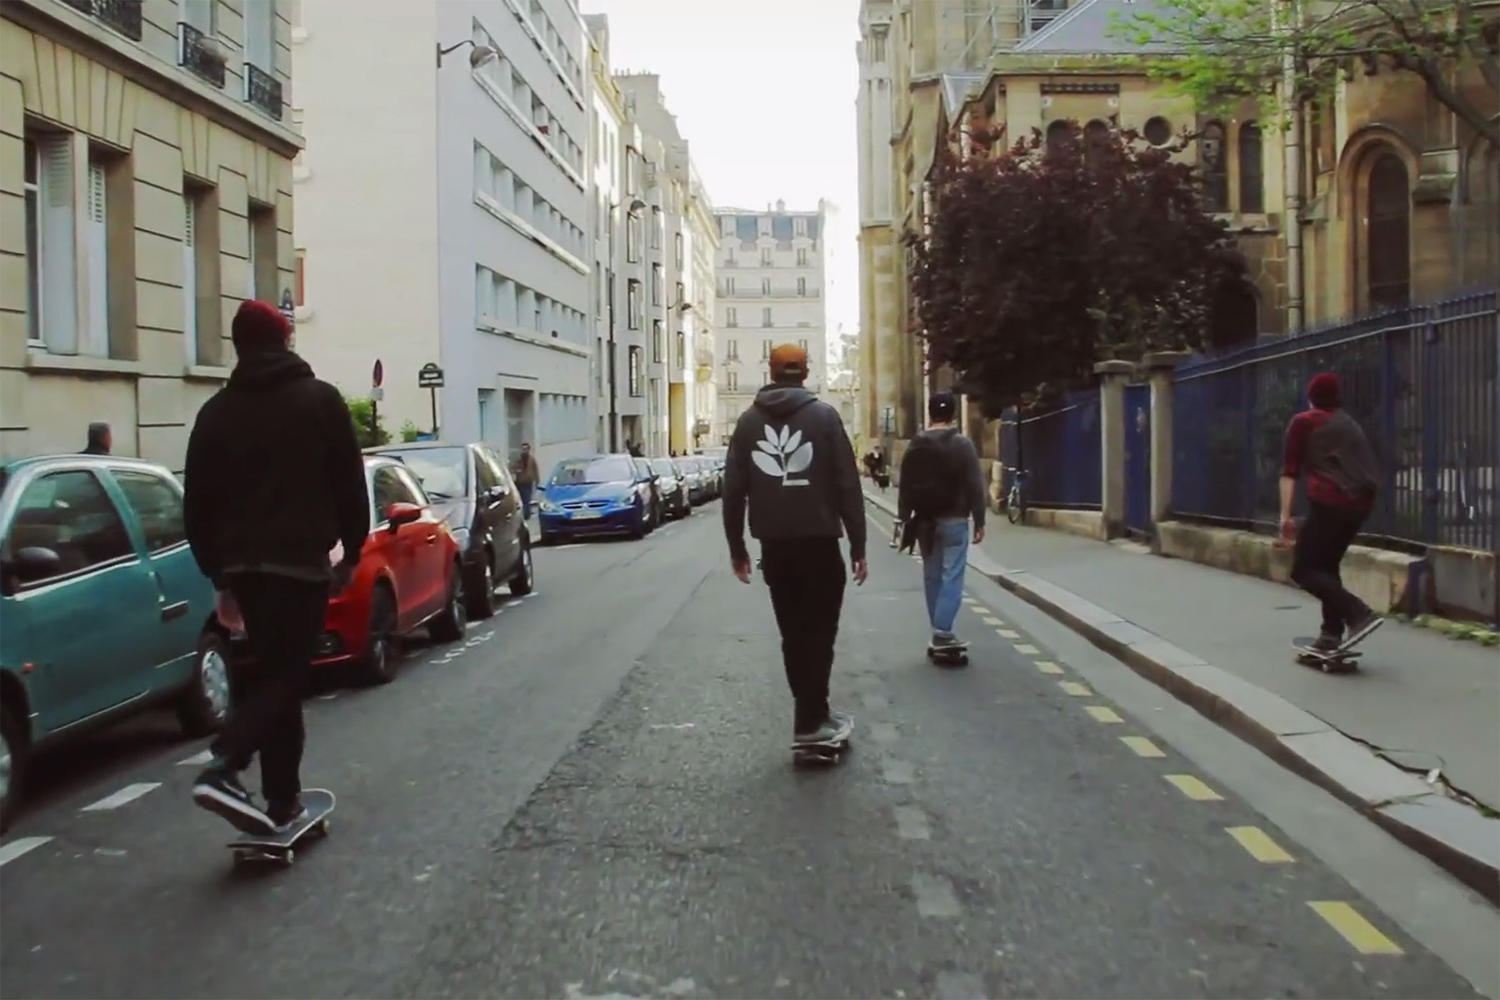 """Vicious Circle"" A Skatebording Film Shot in Paris by Olivier Fanchon"